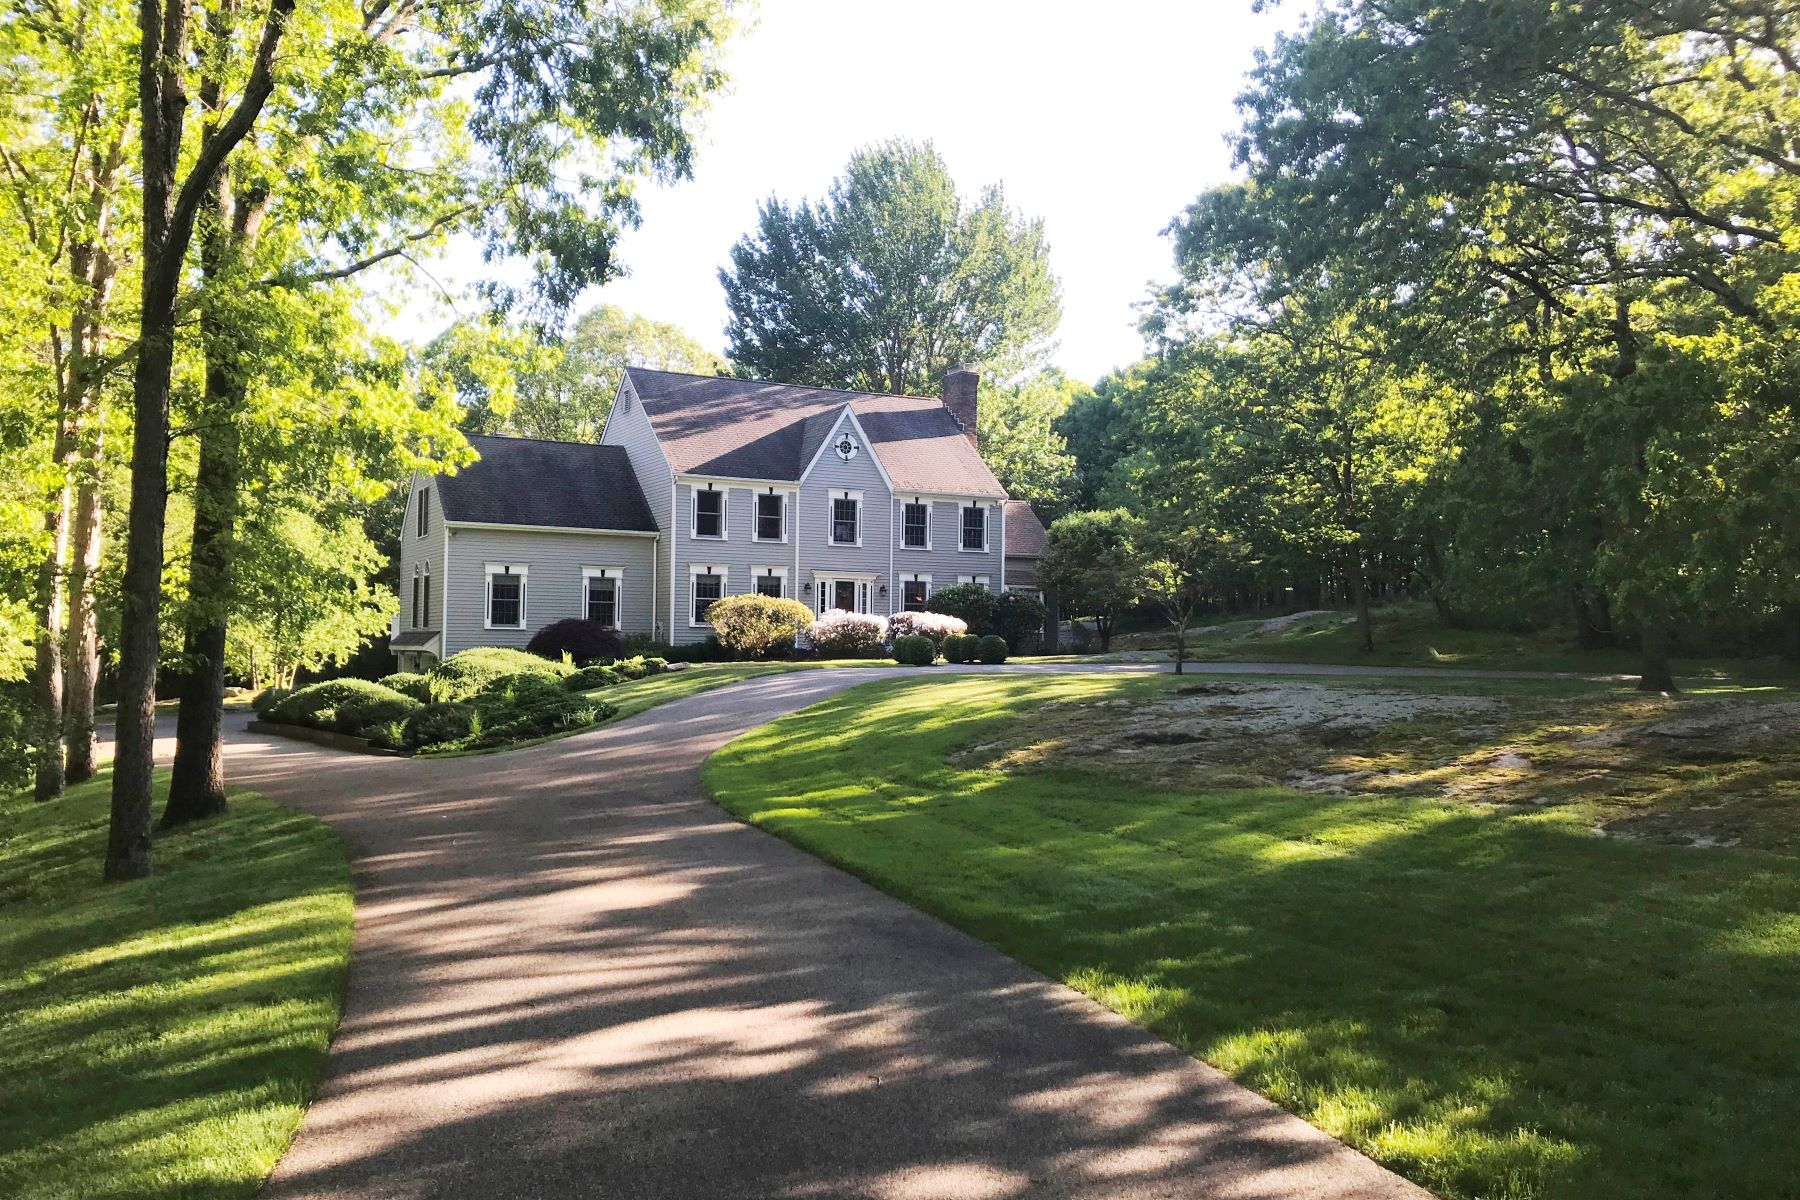 Single Family Homes for Sale at STATELY COLONIAL 66 Whipstick Road Ridgefield, Connecticut 06877 United States